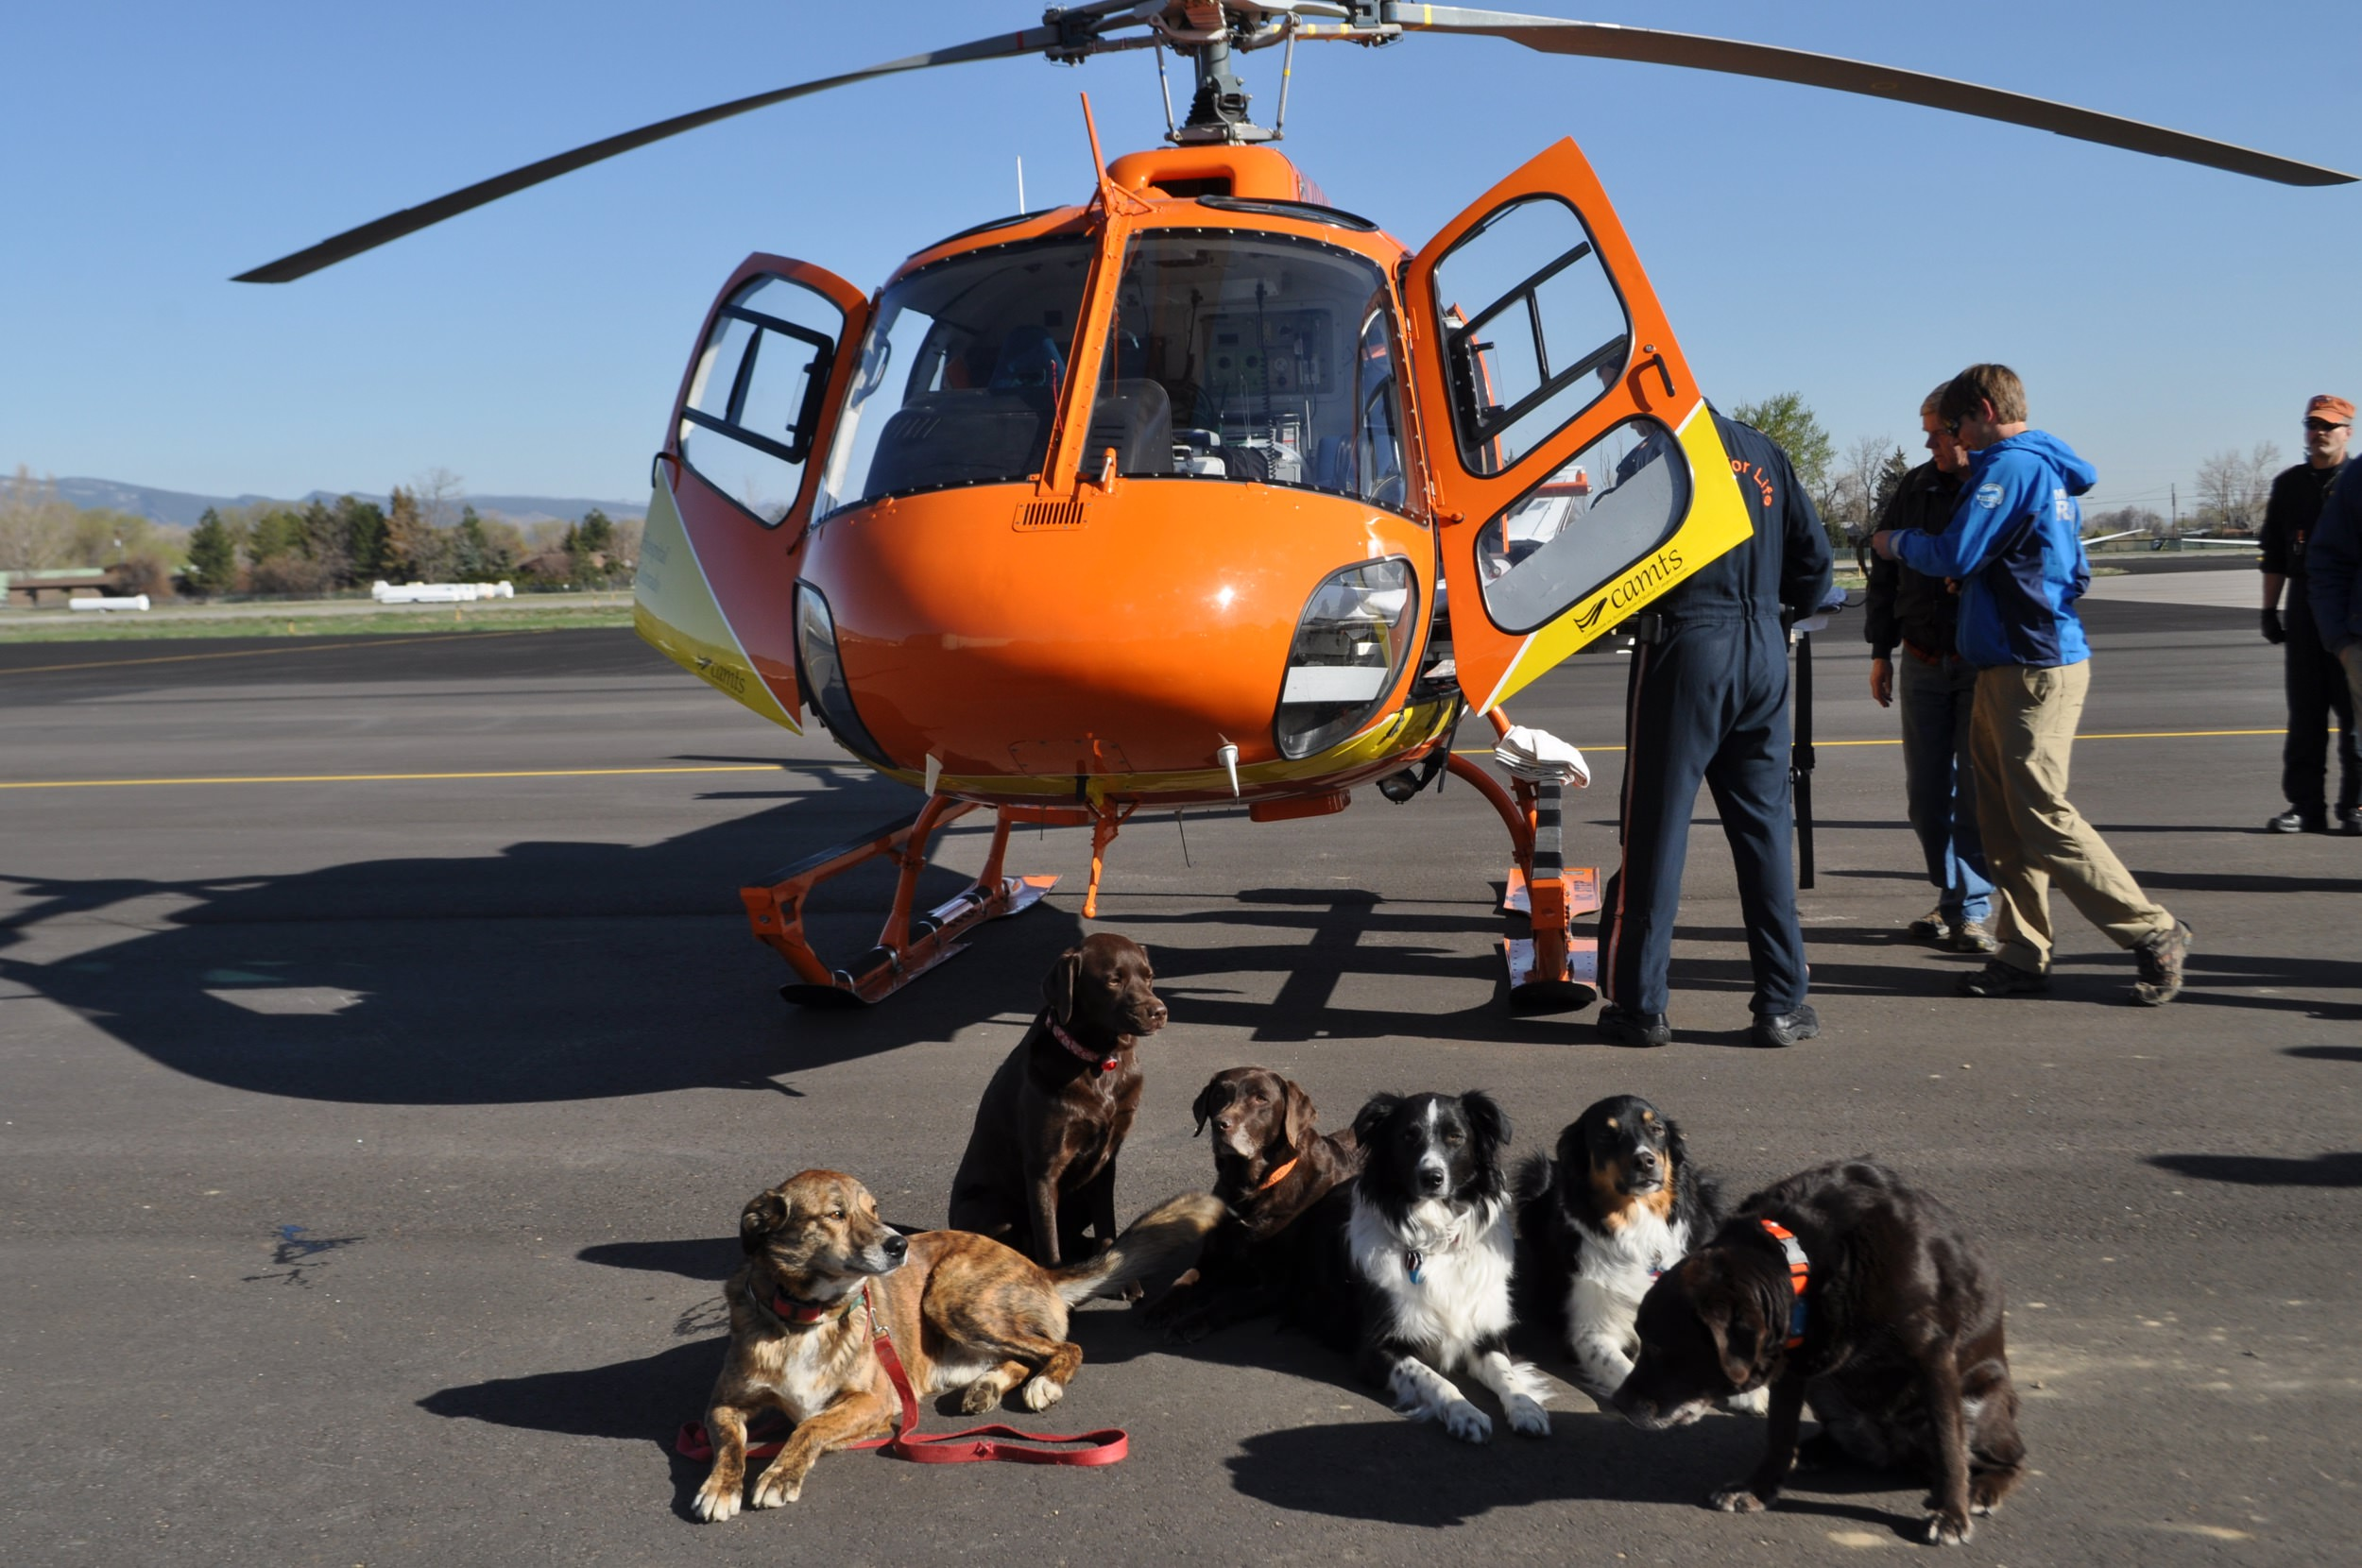 Dogs-with-heli.JPG